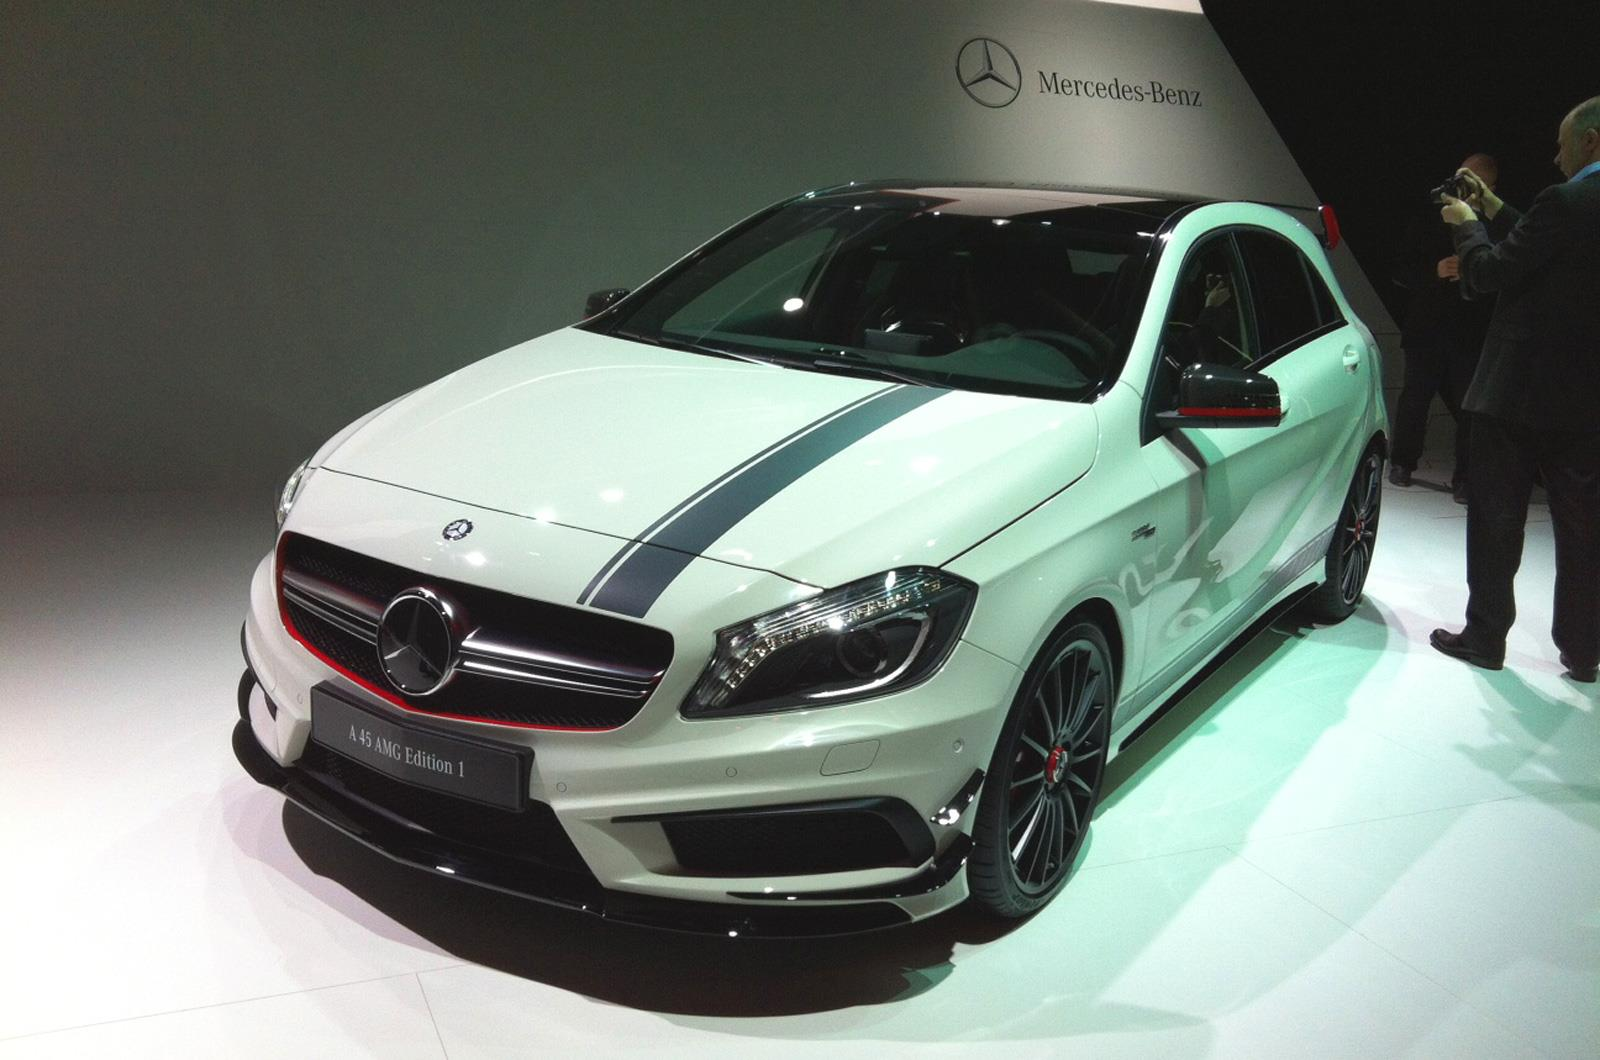 30 AMG models by 2017